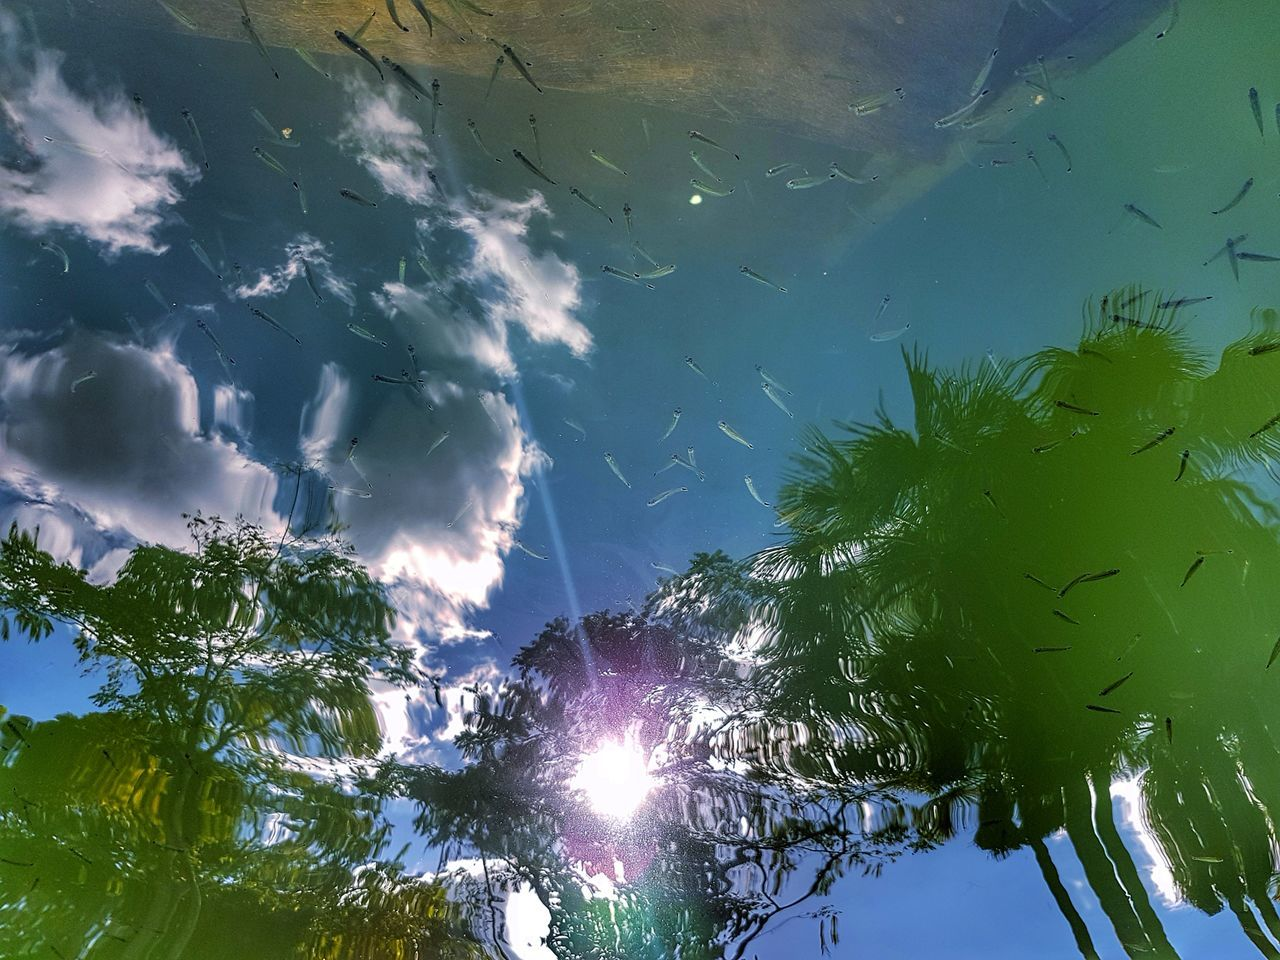 Fish Nature Tree Outdoors Beauty In Nature No People Forest Blue Day Sky Water Freshness Getty Images Premium Collection Bestsellers Beauty In Nature Reflection